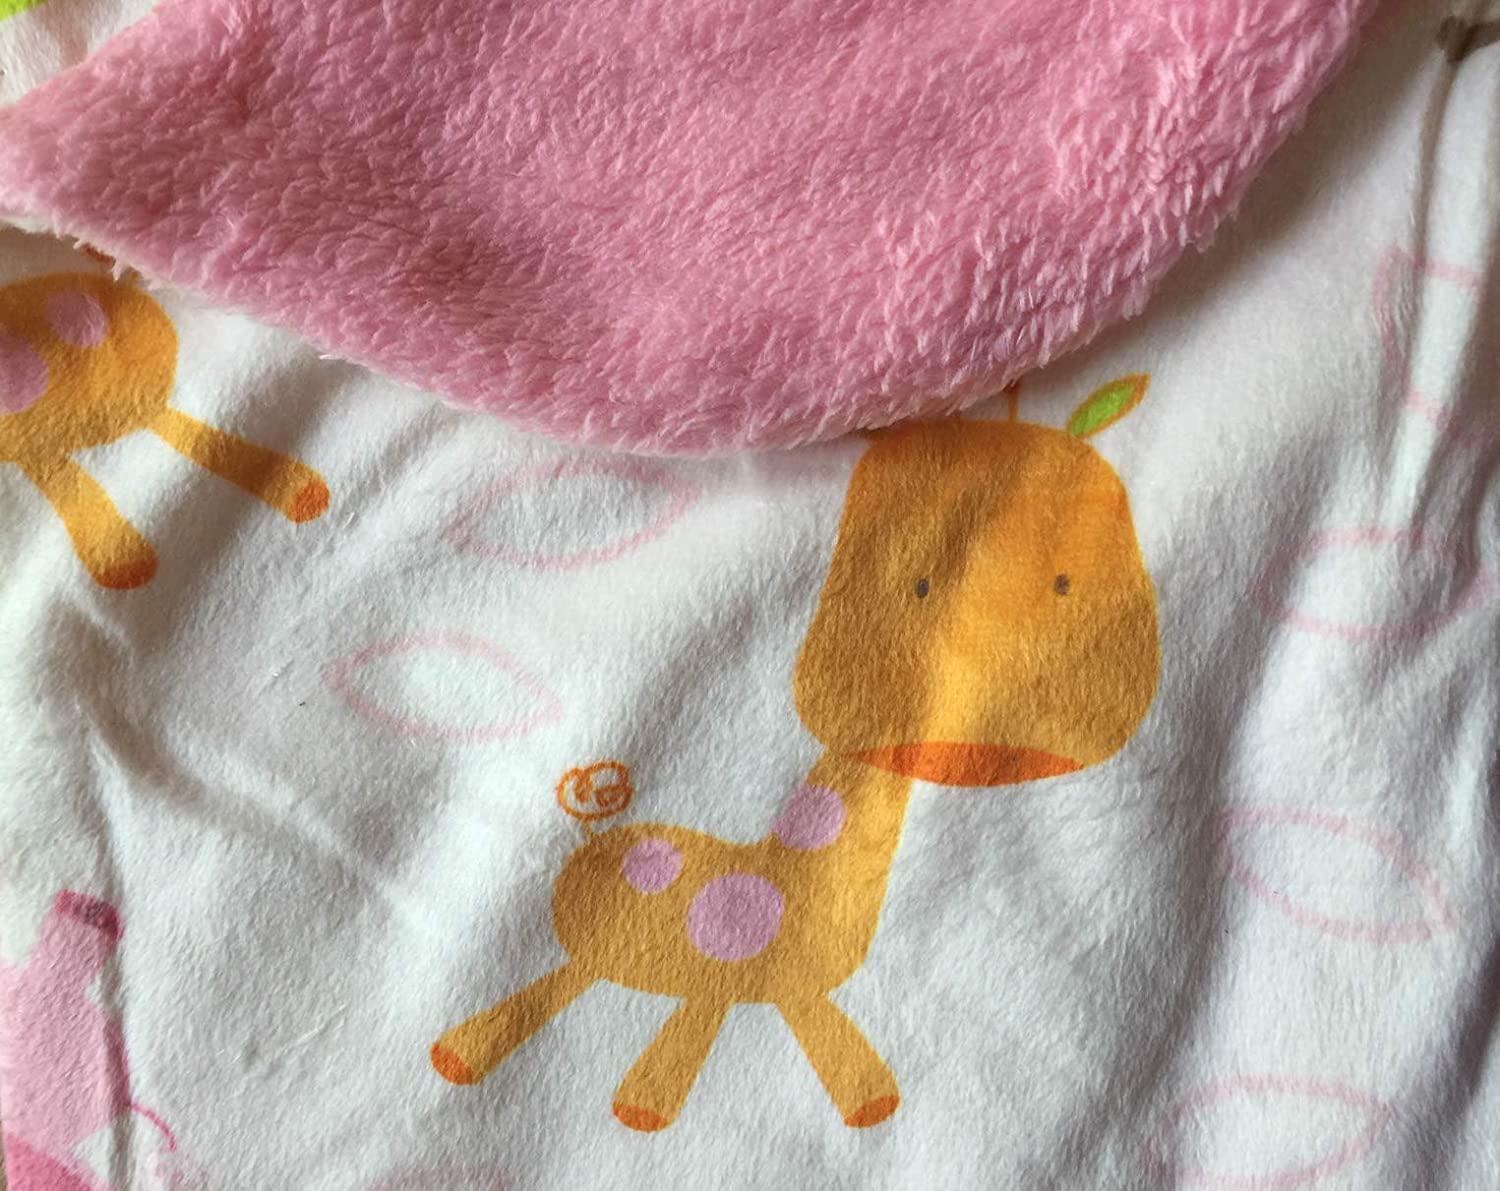 Pink Hedgehog Warm and Cozy Extra Soft Micro Plush Fleece Blanket Anti-Pilling Sherpa Backing Multiple Designs and Themes Baby Blankets For Girls